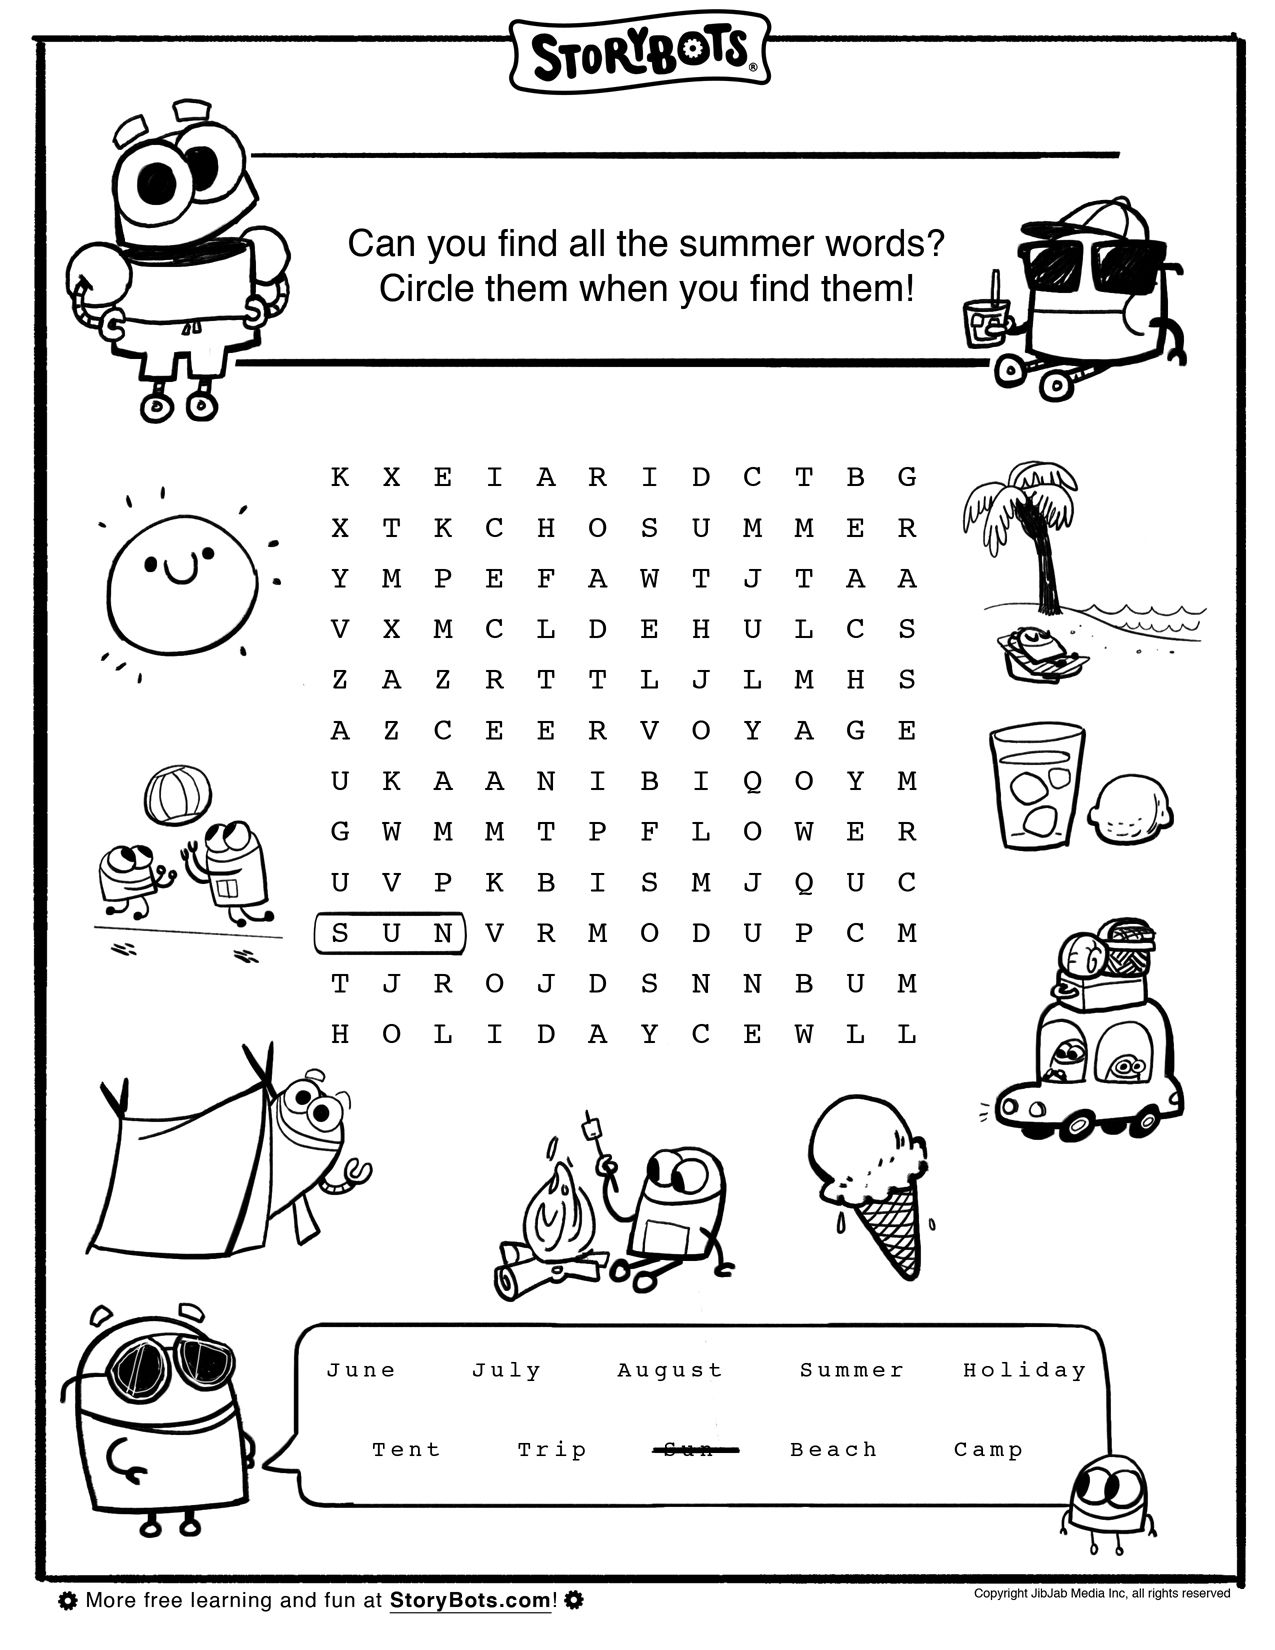 Summer Word Search Summer Math Worksheets Summer Words